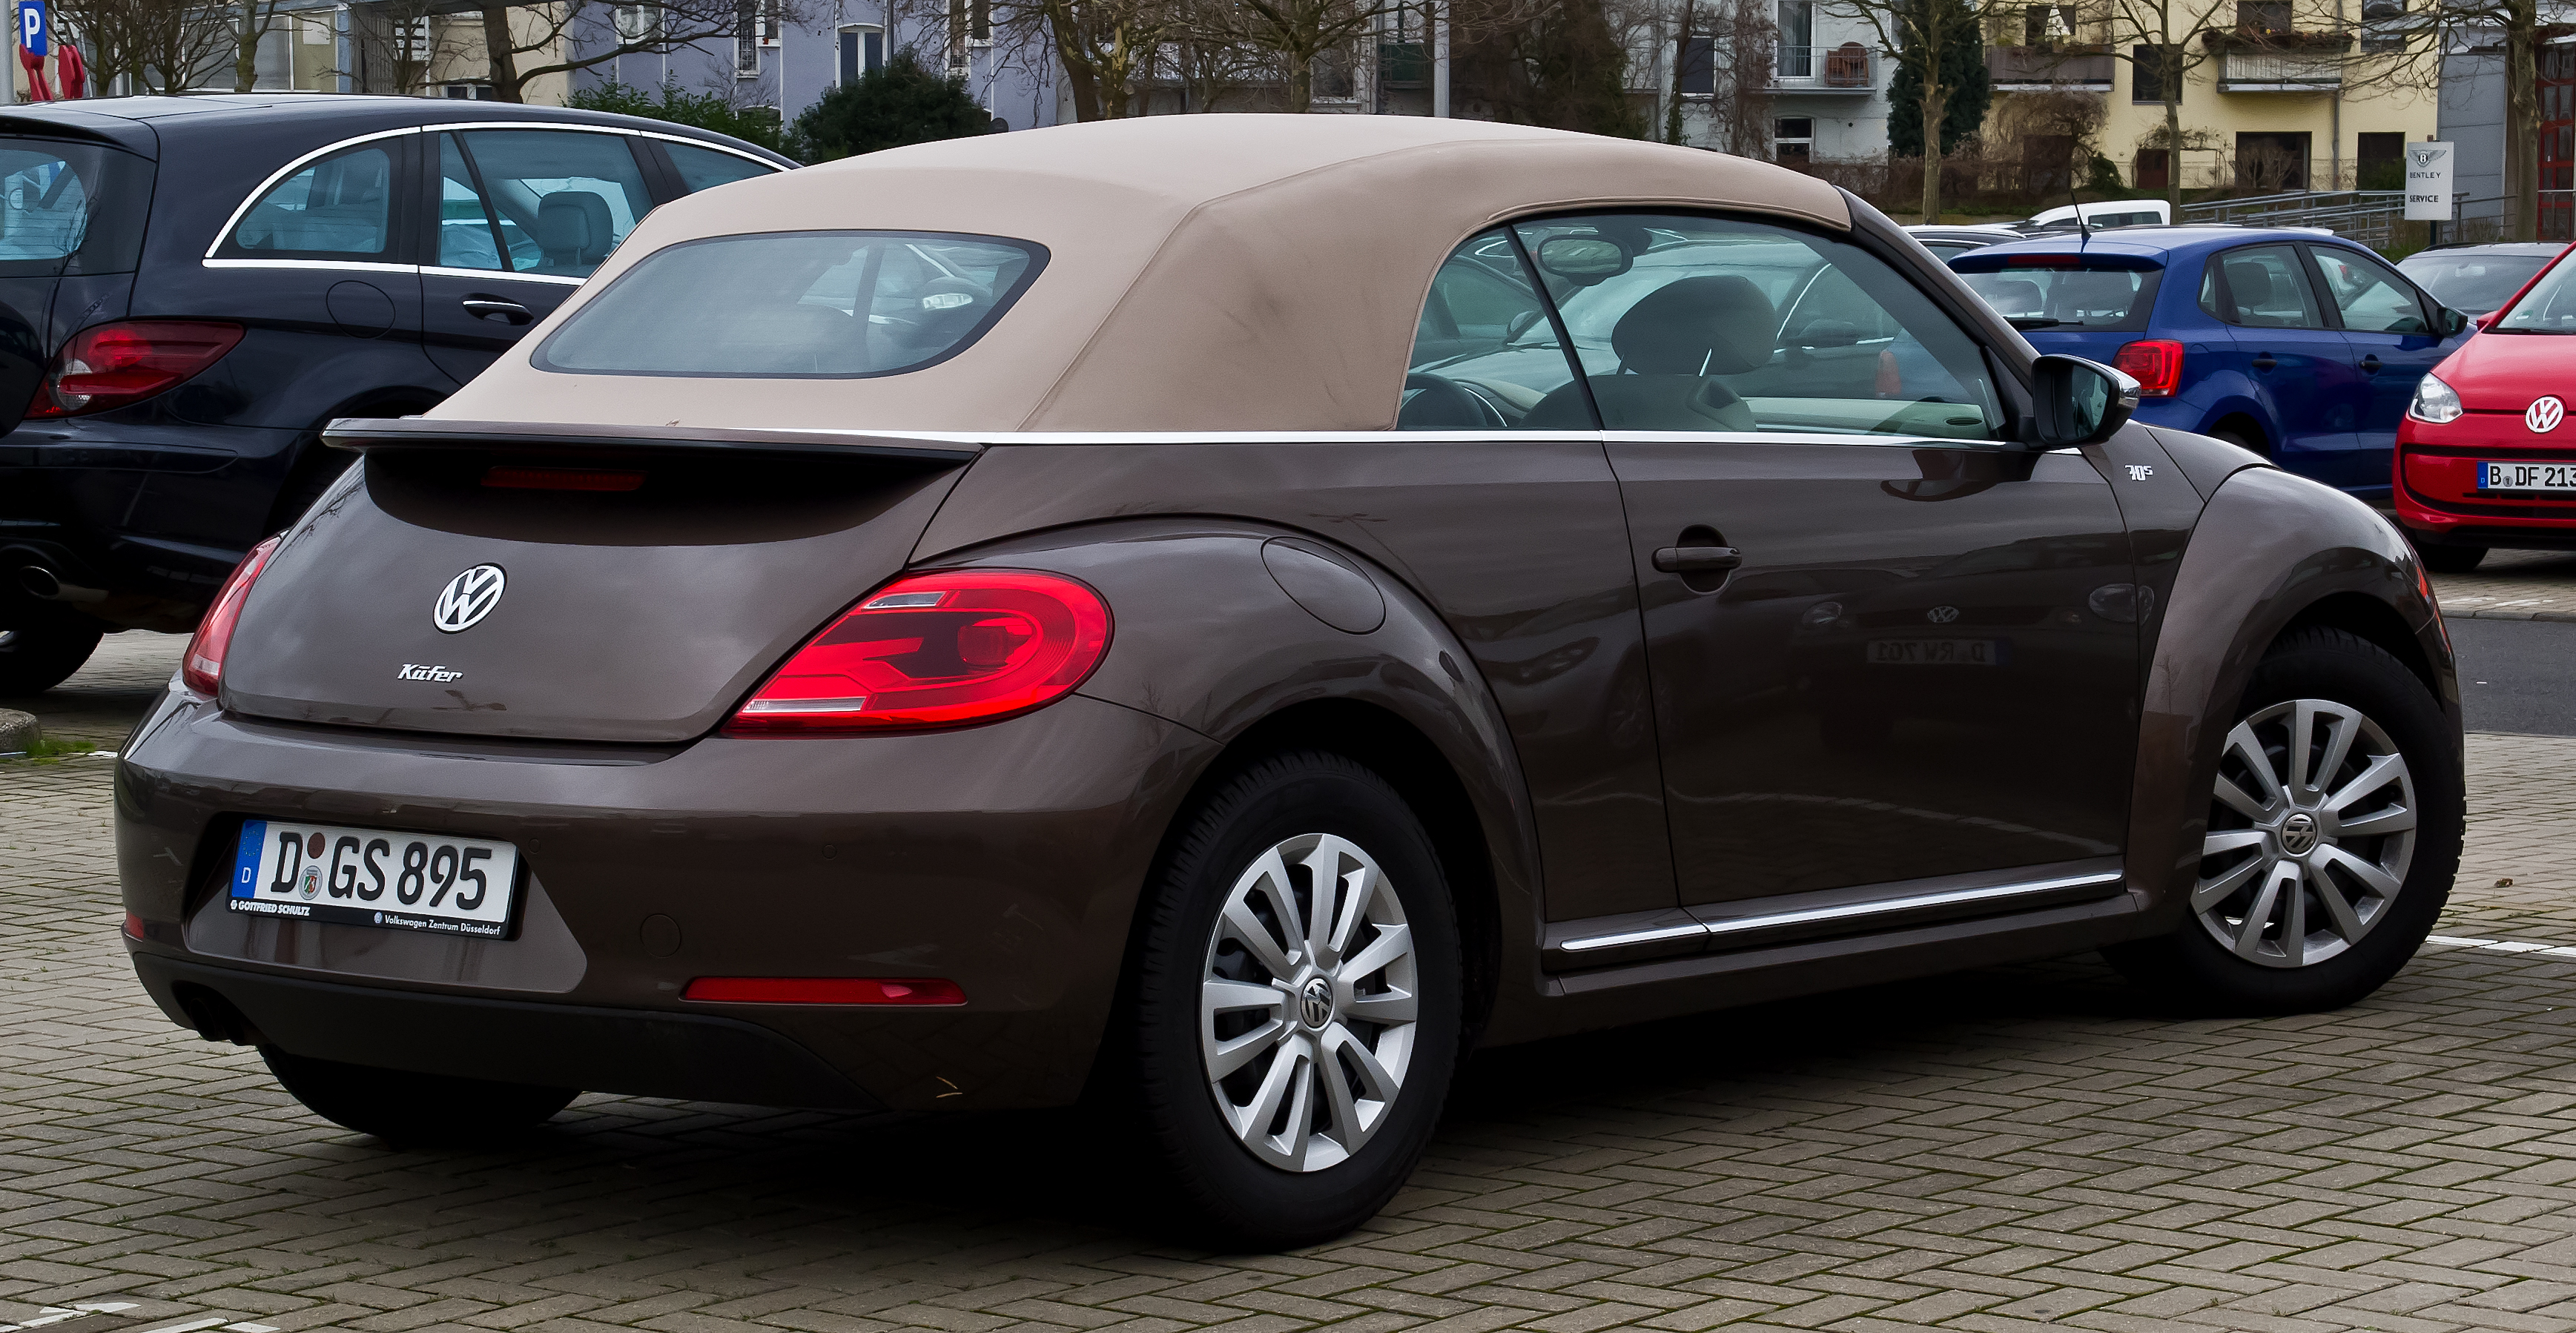 kill will successor volkswagen beetle for a news squashes convertible h the plans